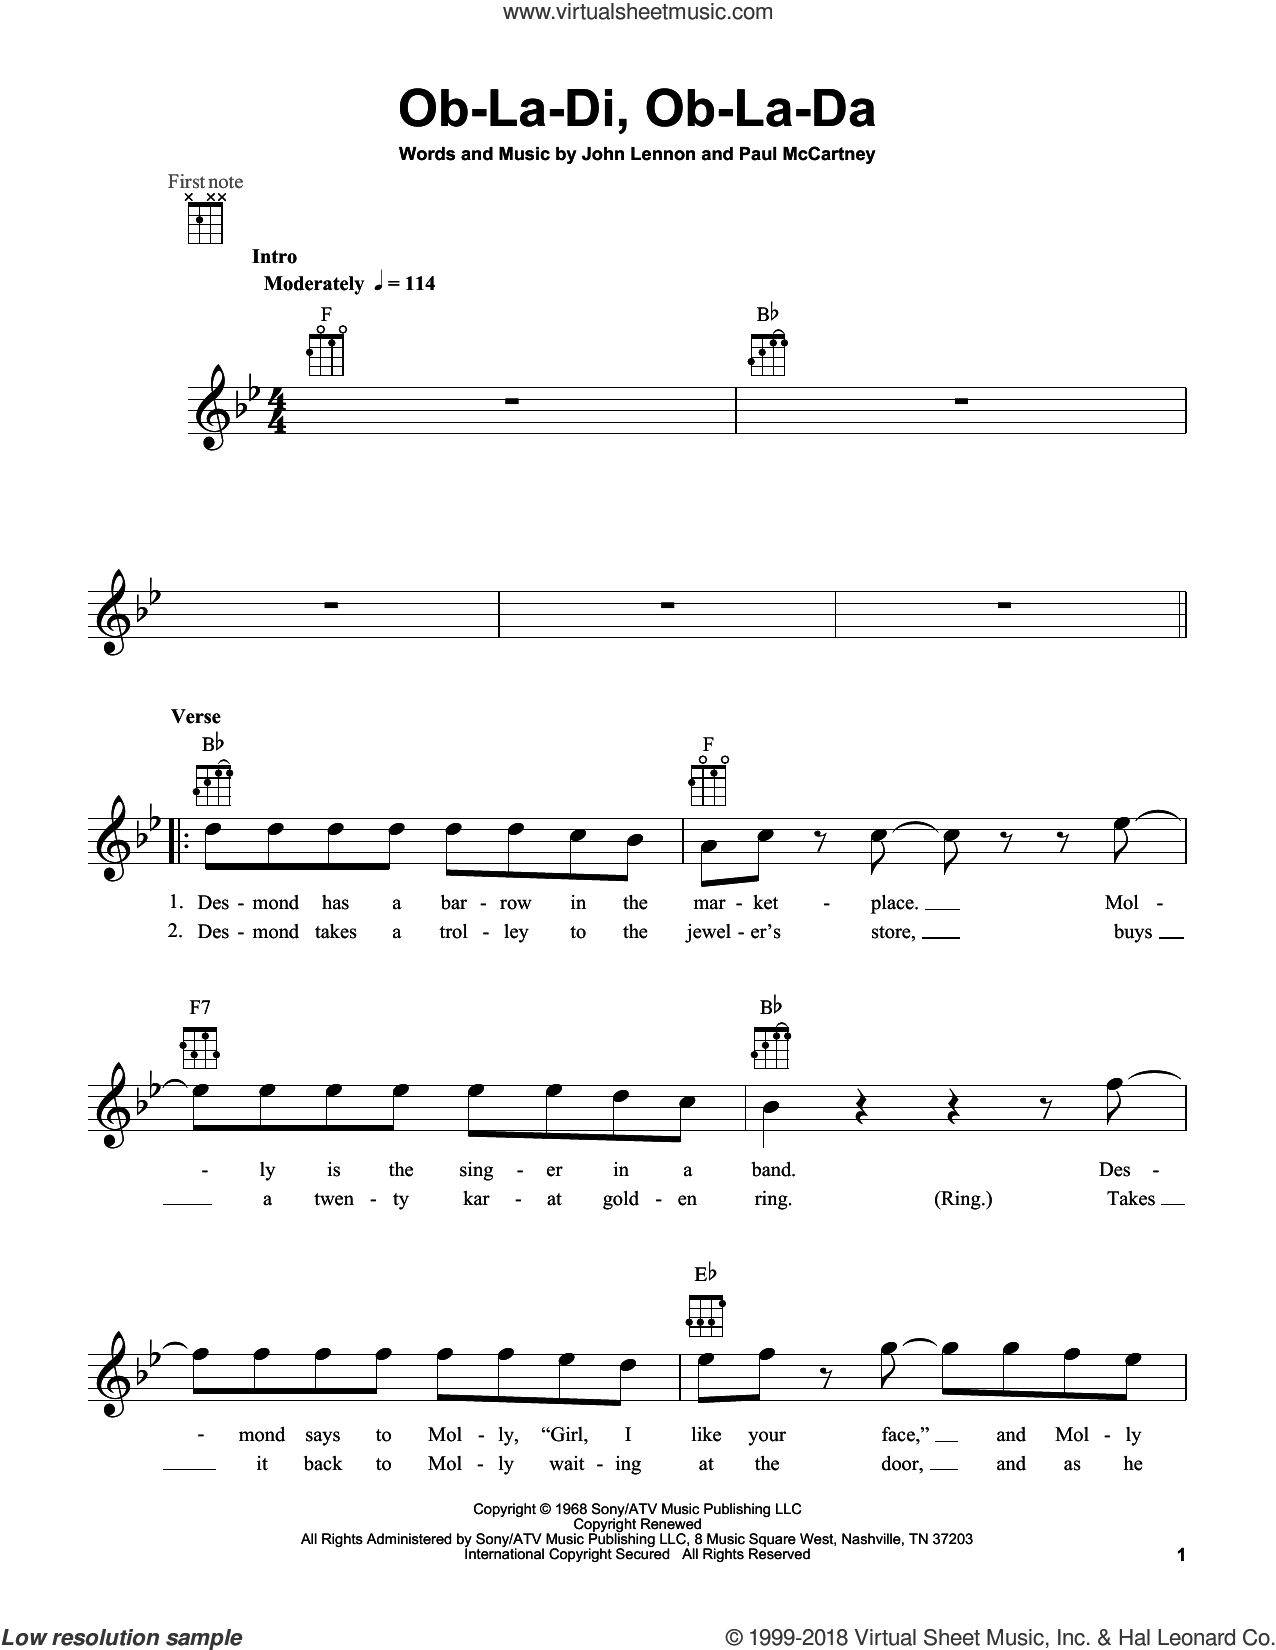 Ob-La-Di, Ob-La-Da sheet music for ukulele by Paul McCartney, The Beatles and John Lennon. Score Image Preview.